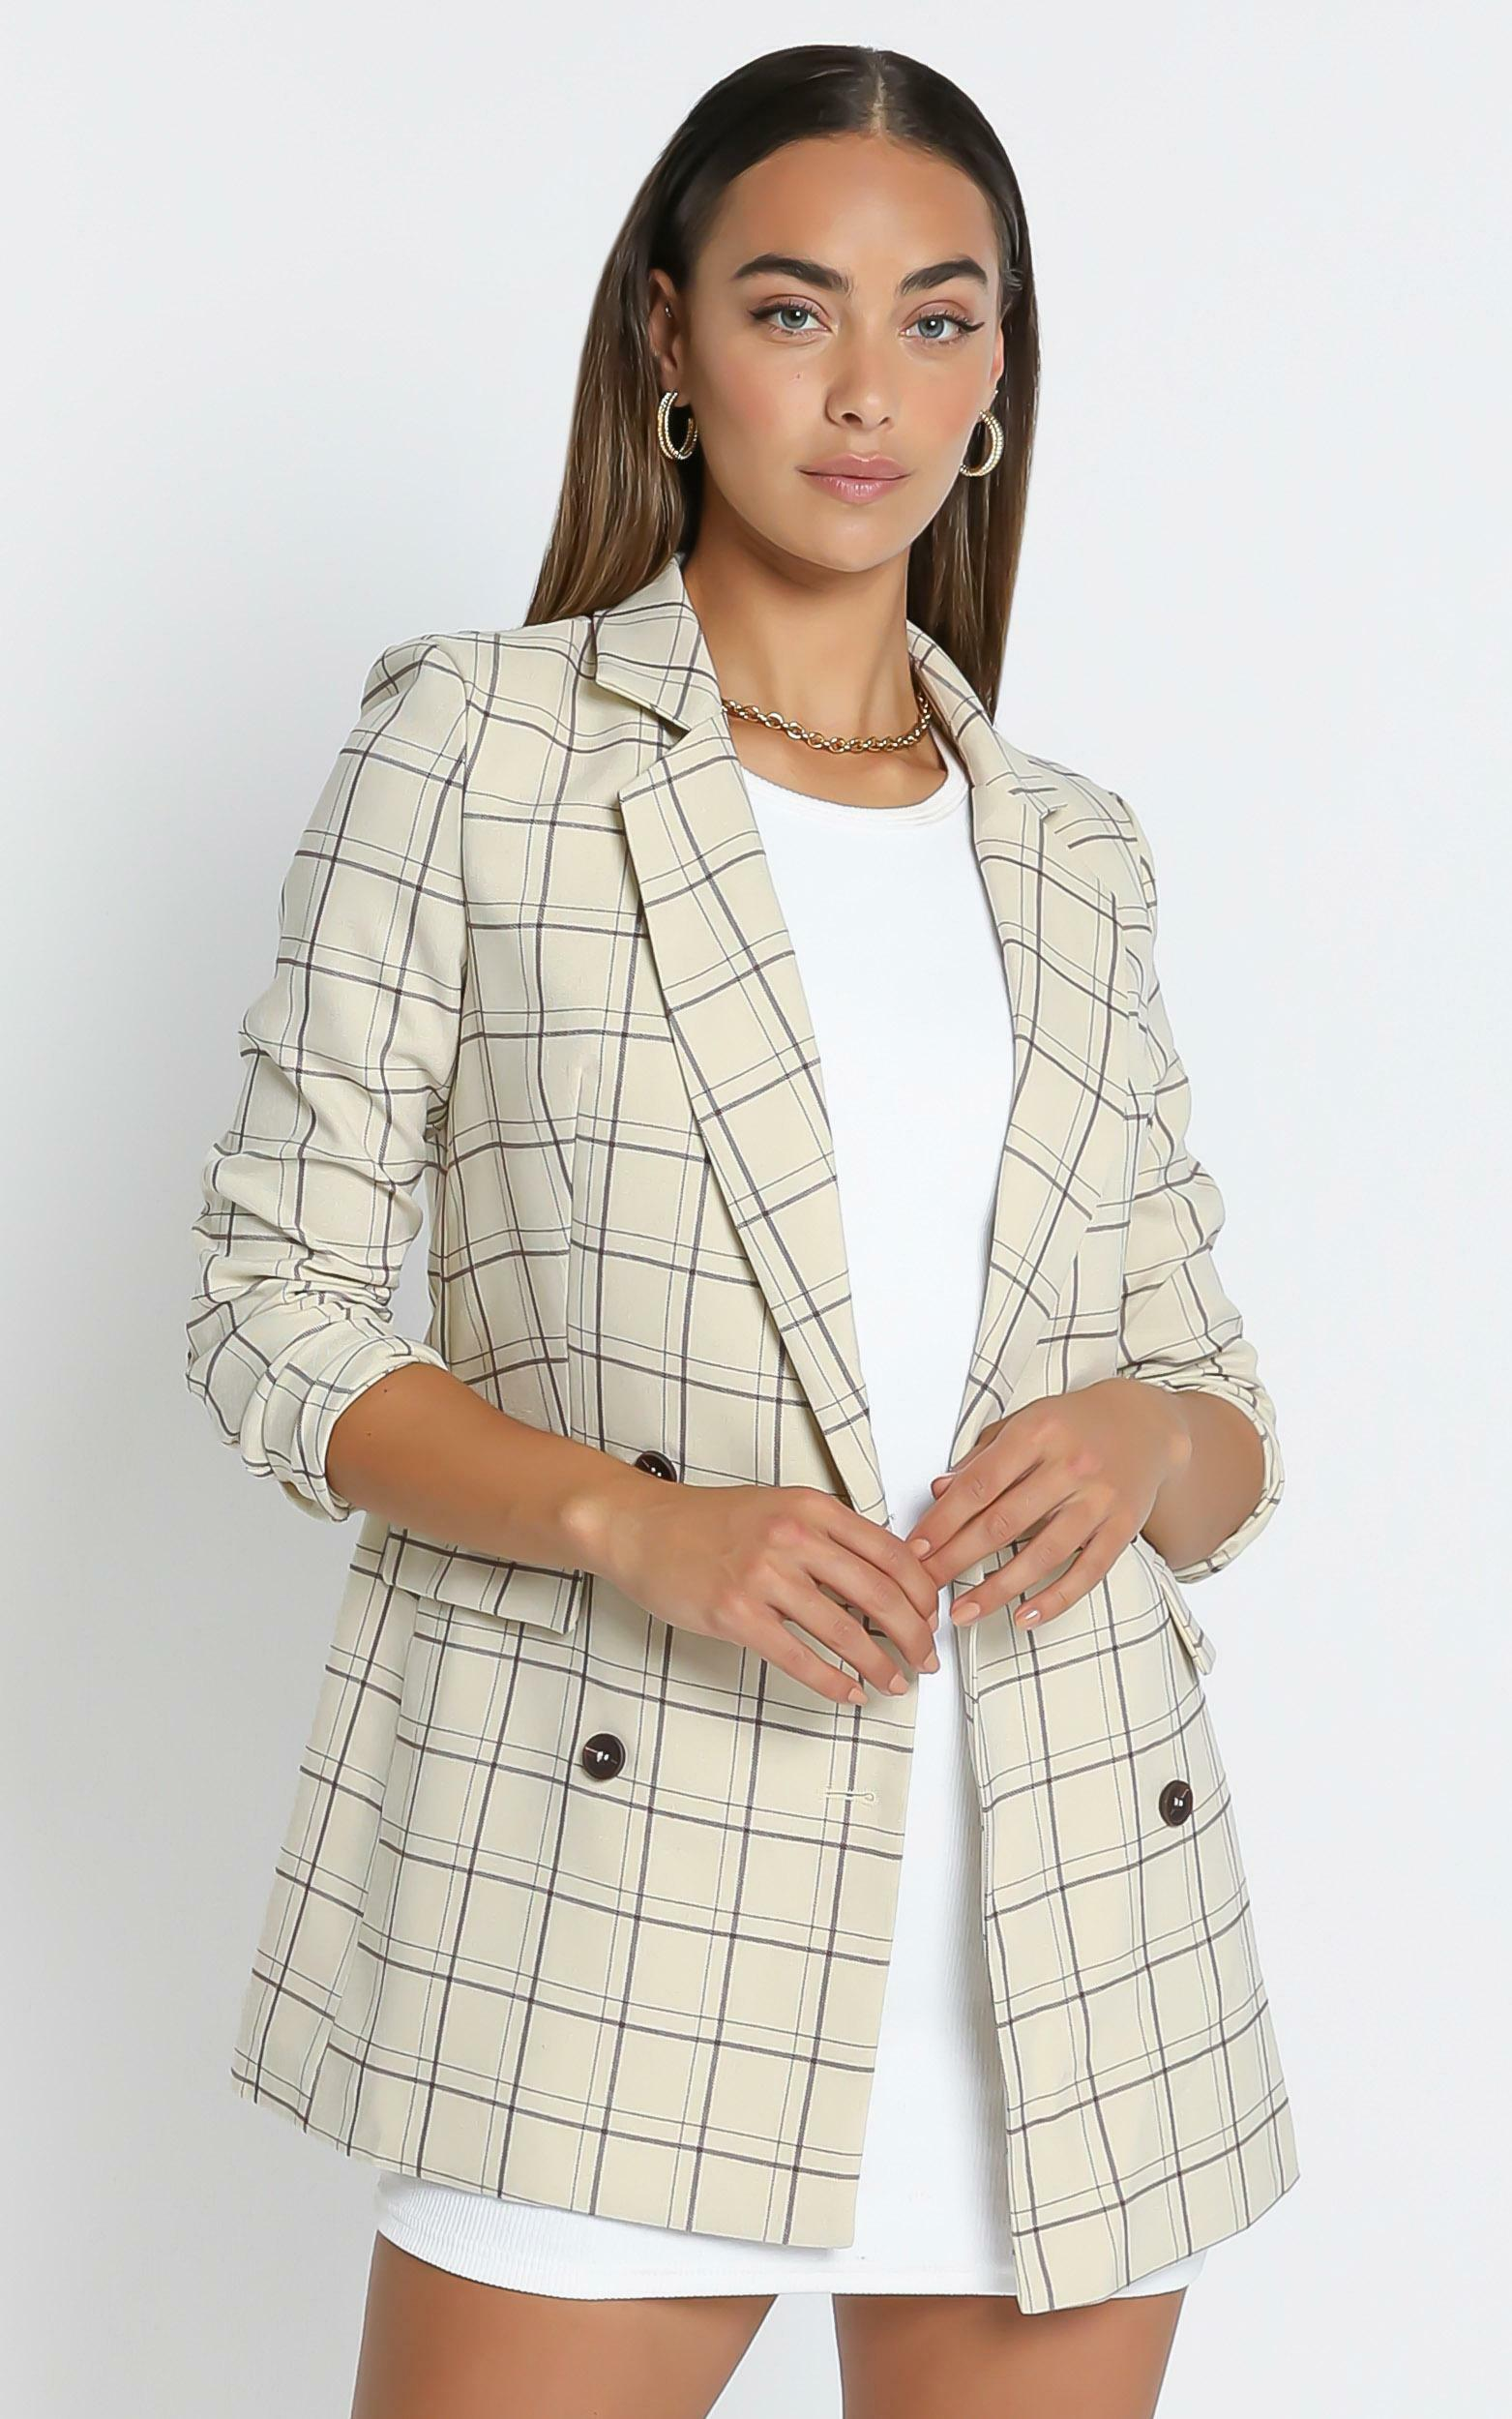 Sort It Out Blazer in Cream Check - 04, CRE4, hi-res image number null